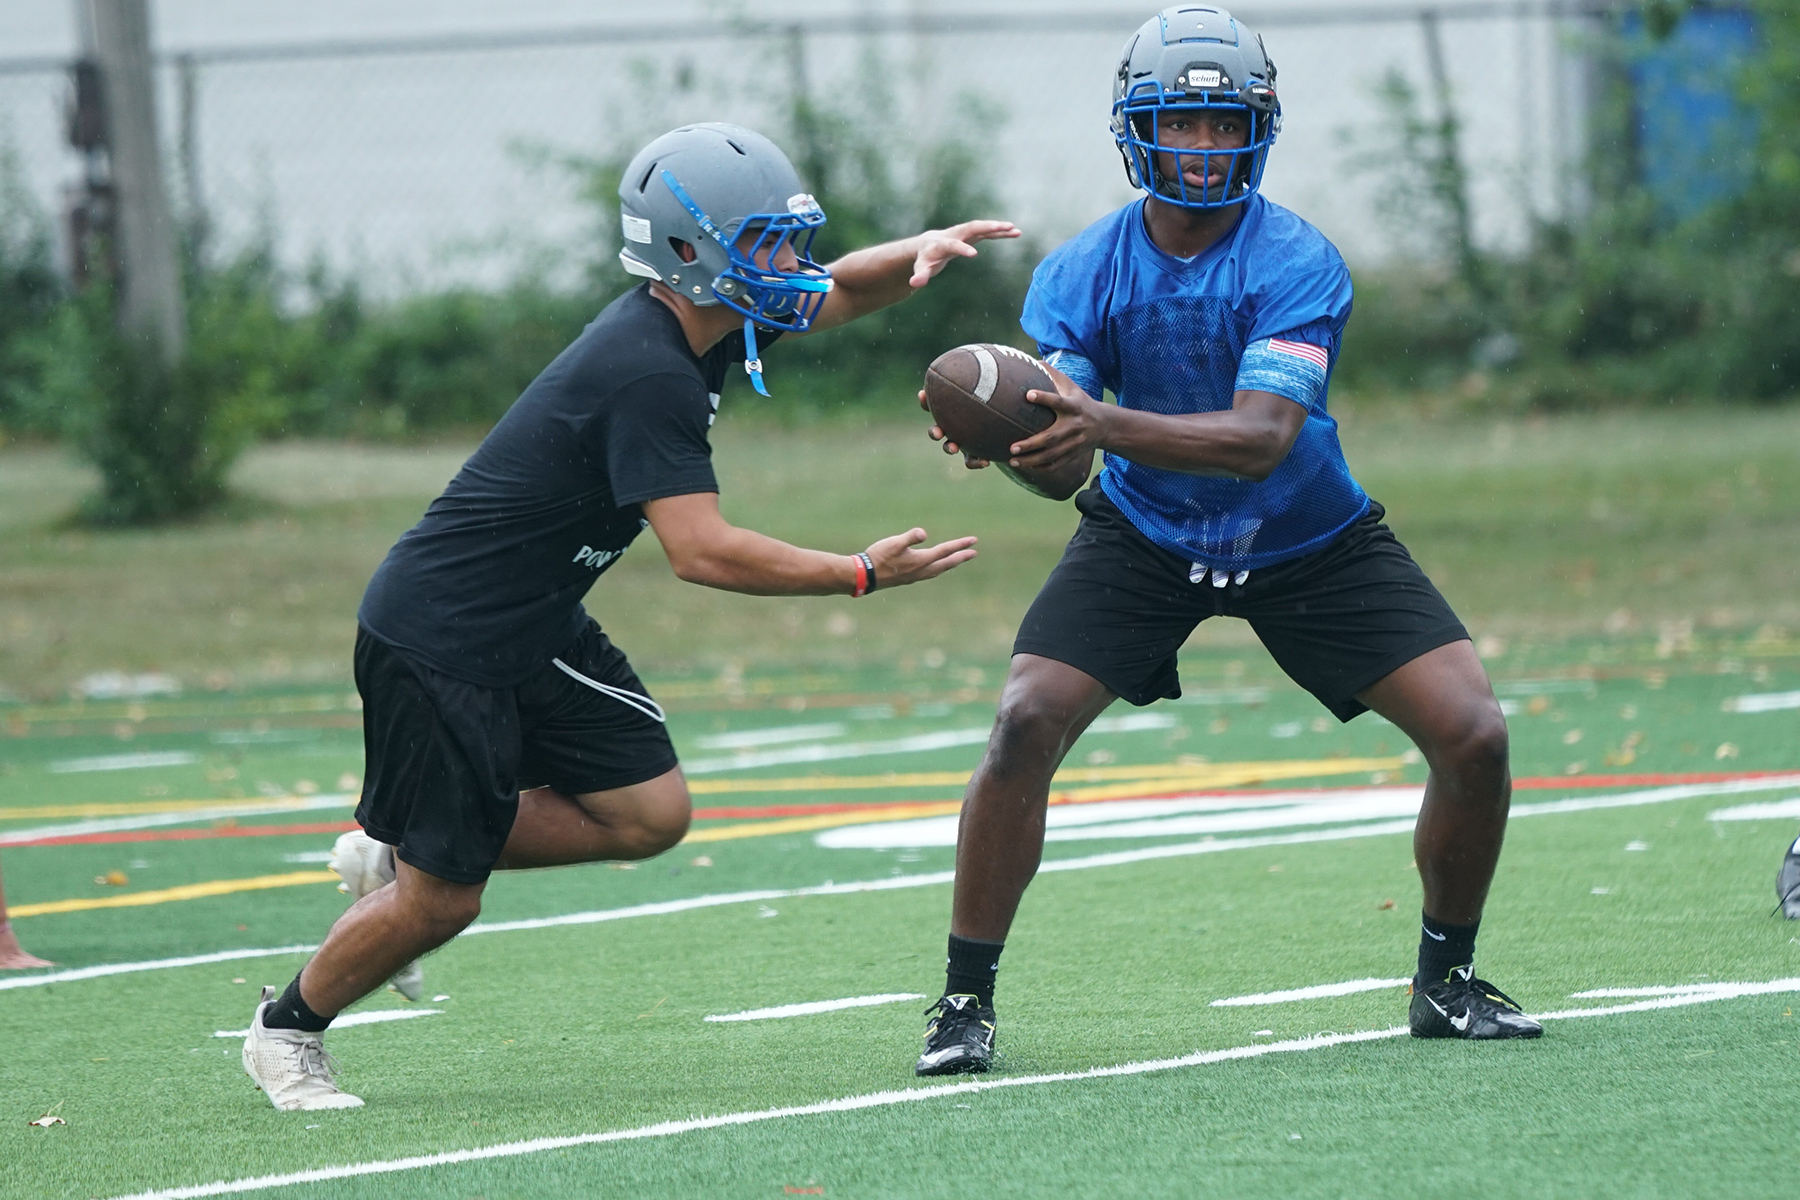 Taft's Dexter Stigall IV hands the ball off during the first practice of the season.